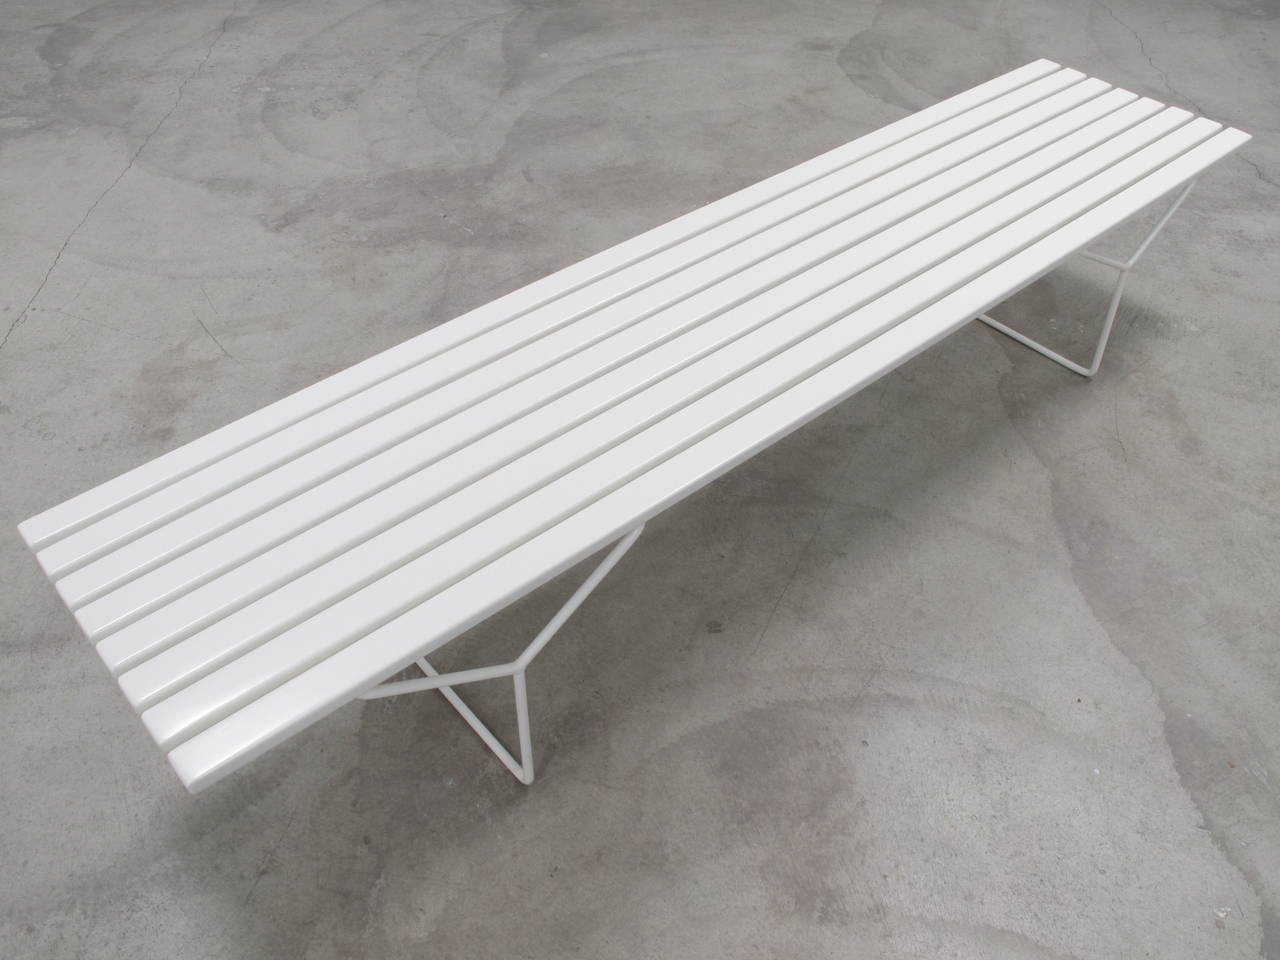 Long Wood Slat Bench By Harry Bertoia At 1stdibs